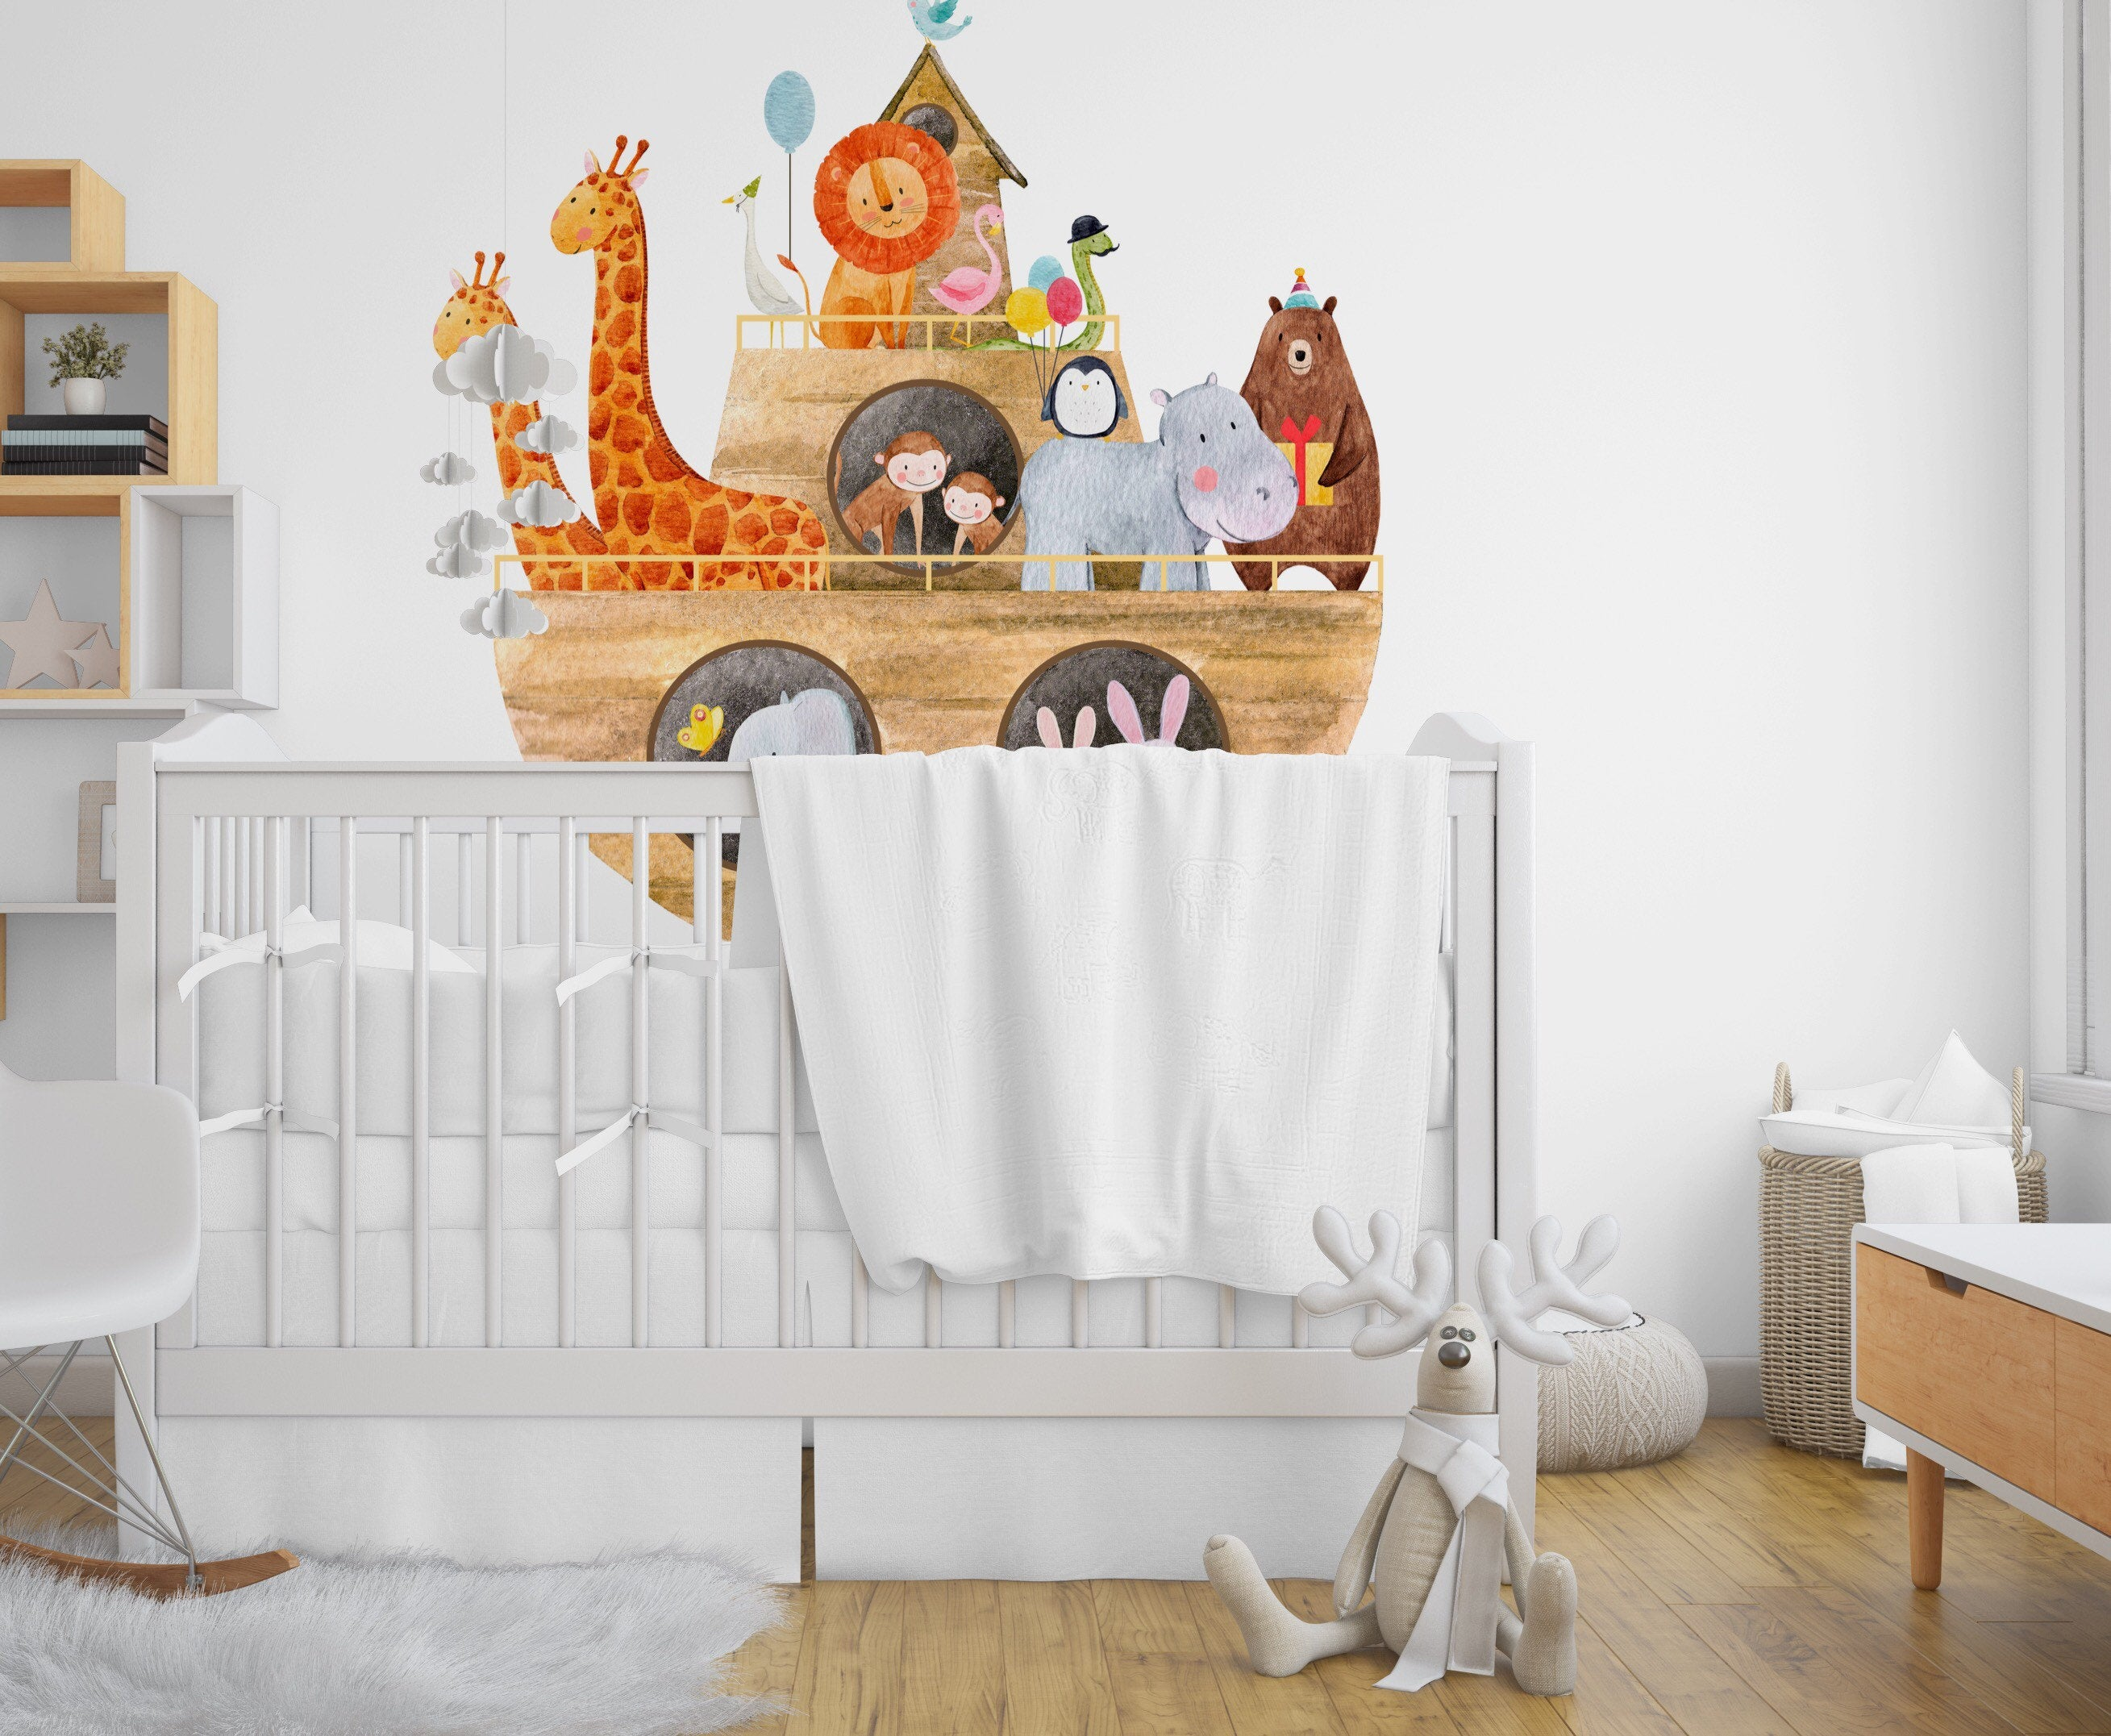 Noah's arc children's Fabric Removable re-positionable wall decals stickers